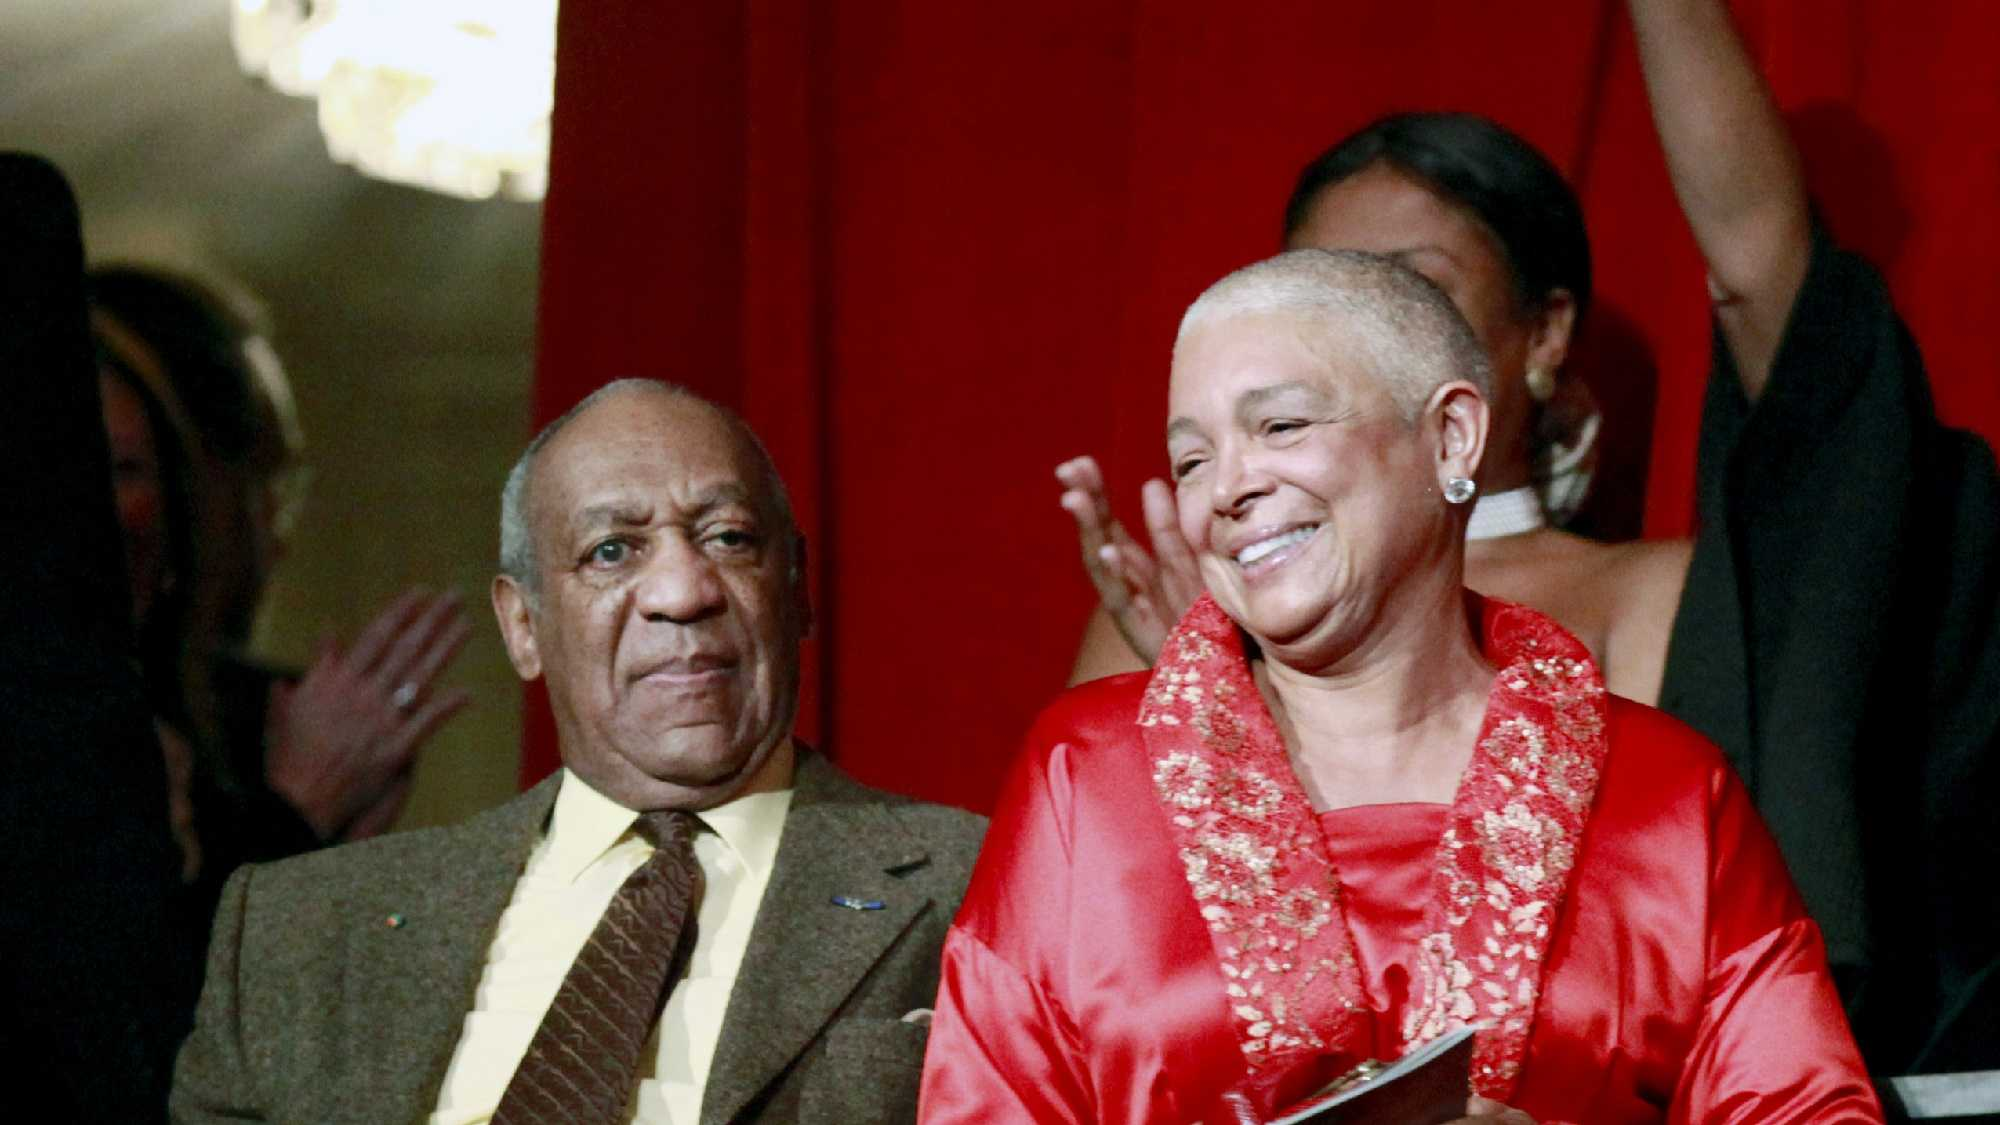 This Oct. 26, 2009 file photo, comedian Bill Cosby, left, and his wife Camille appear at the John F. Kennedy Center for Performing Arts before Bill Cosby received the Mark Twain Prize for American Humor in Washington.